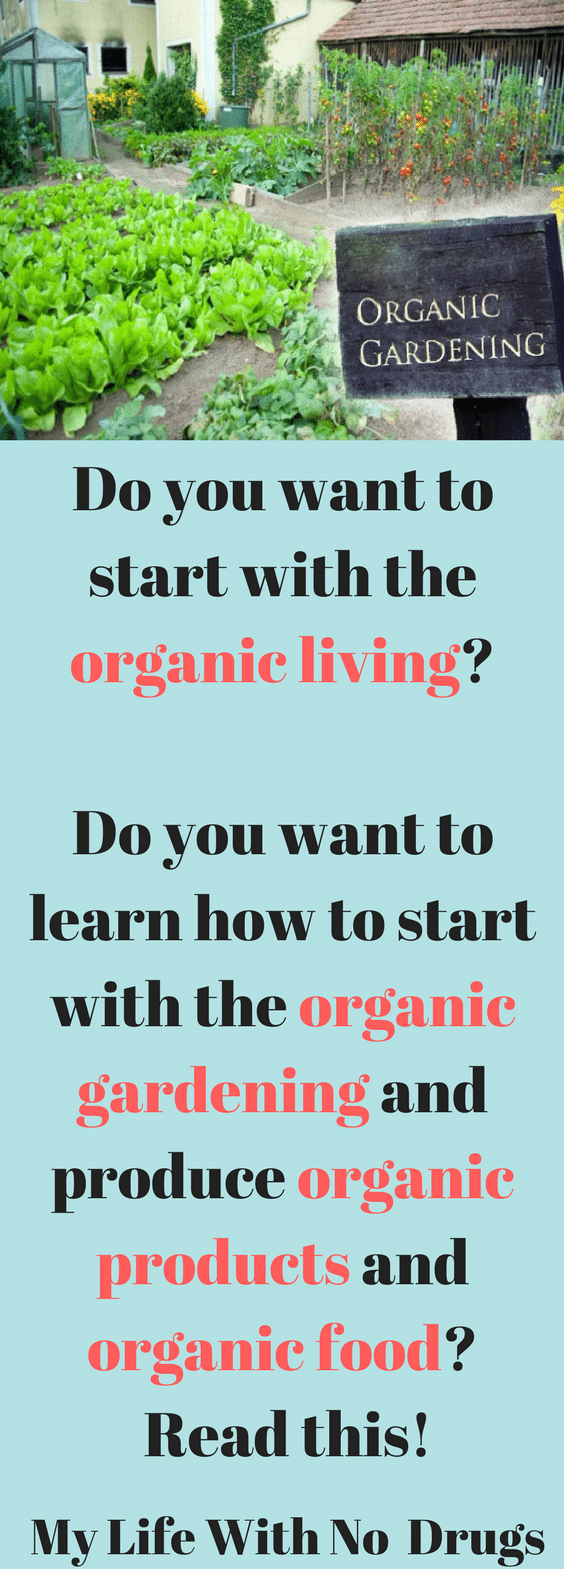 Do you want to start with the #organicliving  Do you want to learn how to start with the #organicgardening and produce #organicproducts and #organicfood? #organic  Read this!  #organicfood #organicliving #love  #healthyfood #chemicalfree  #garden #report